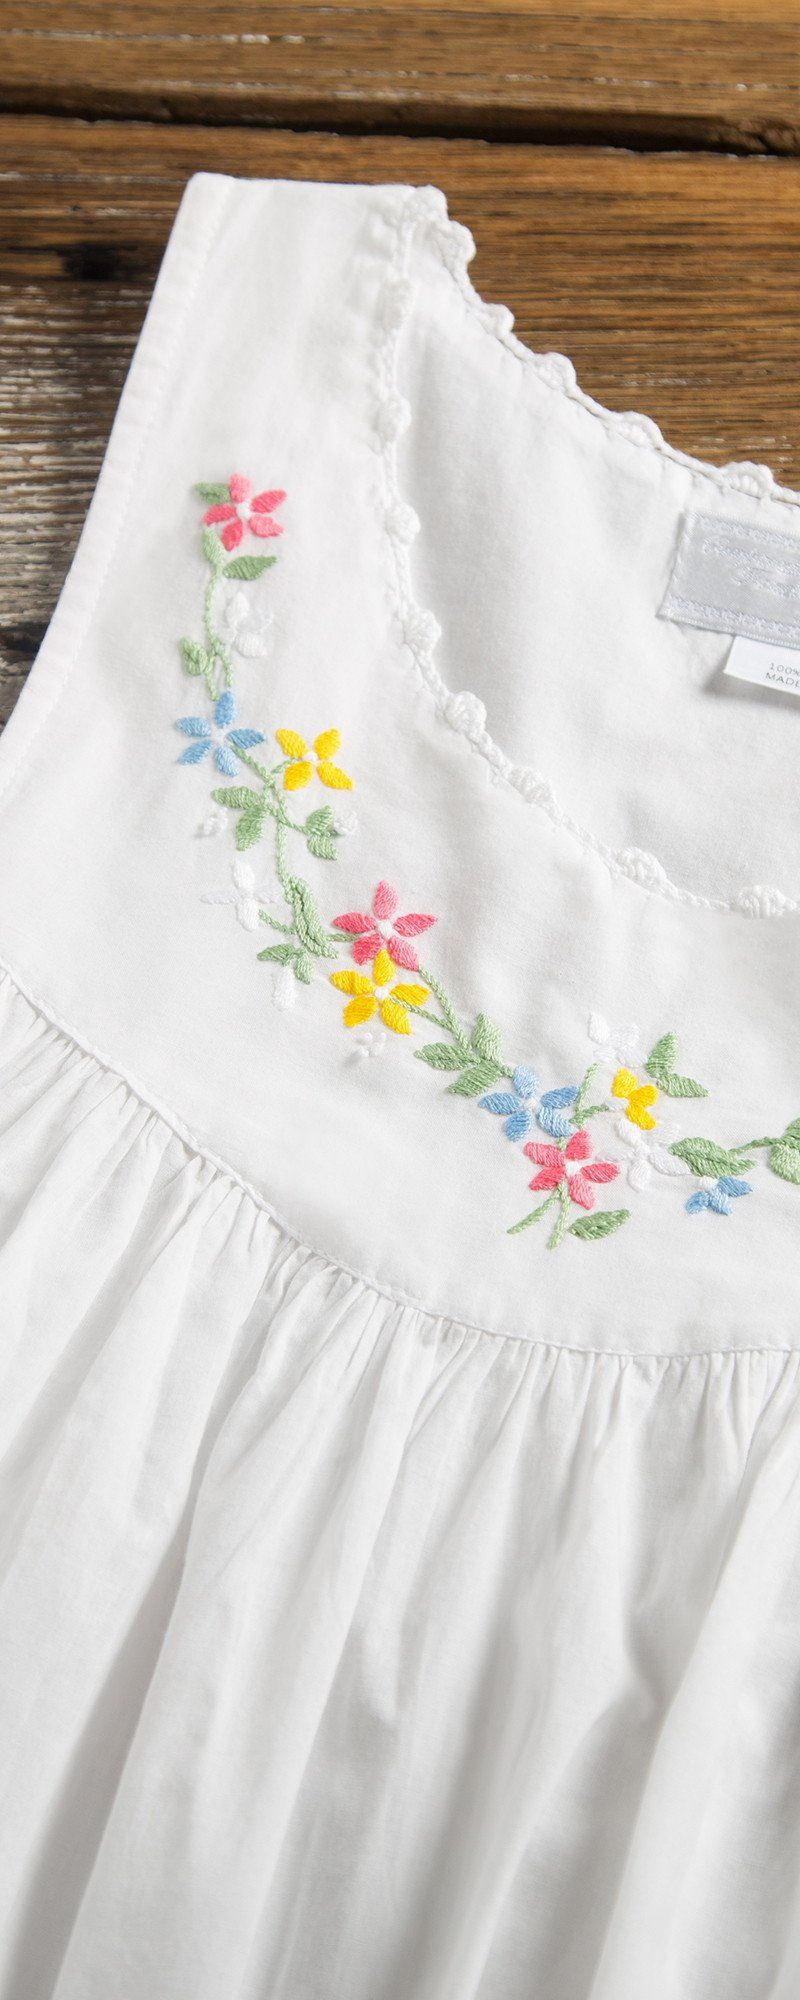 a450da457ea Nightgowns embroidered with a delicate garland of flowers are handmade by a  cooperative of Haitian women who are working to lift their families out of  ...